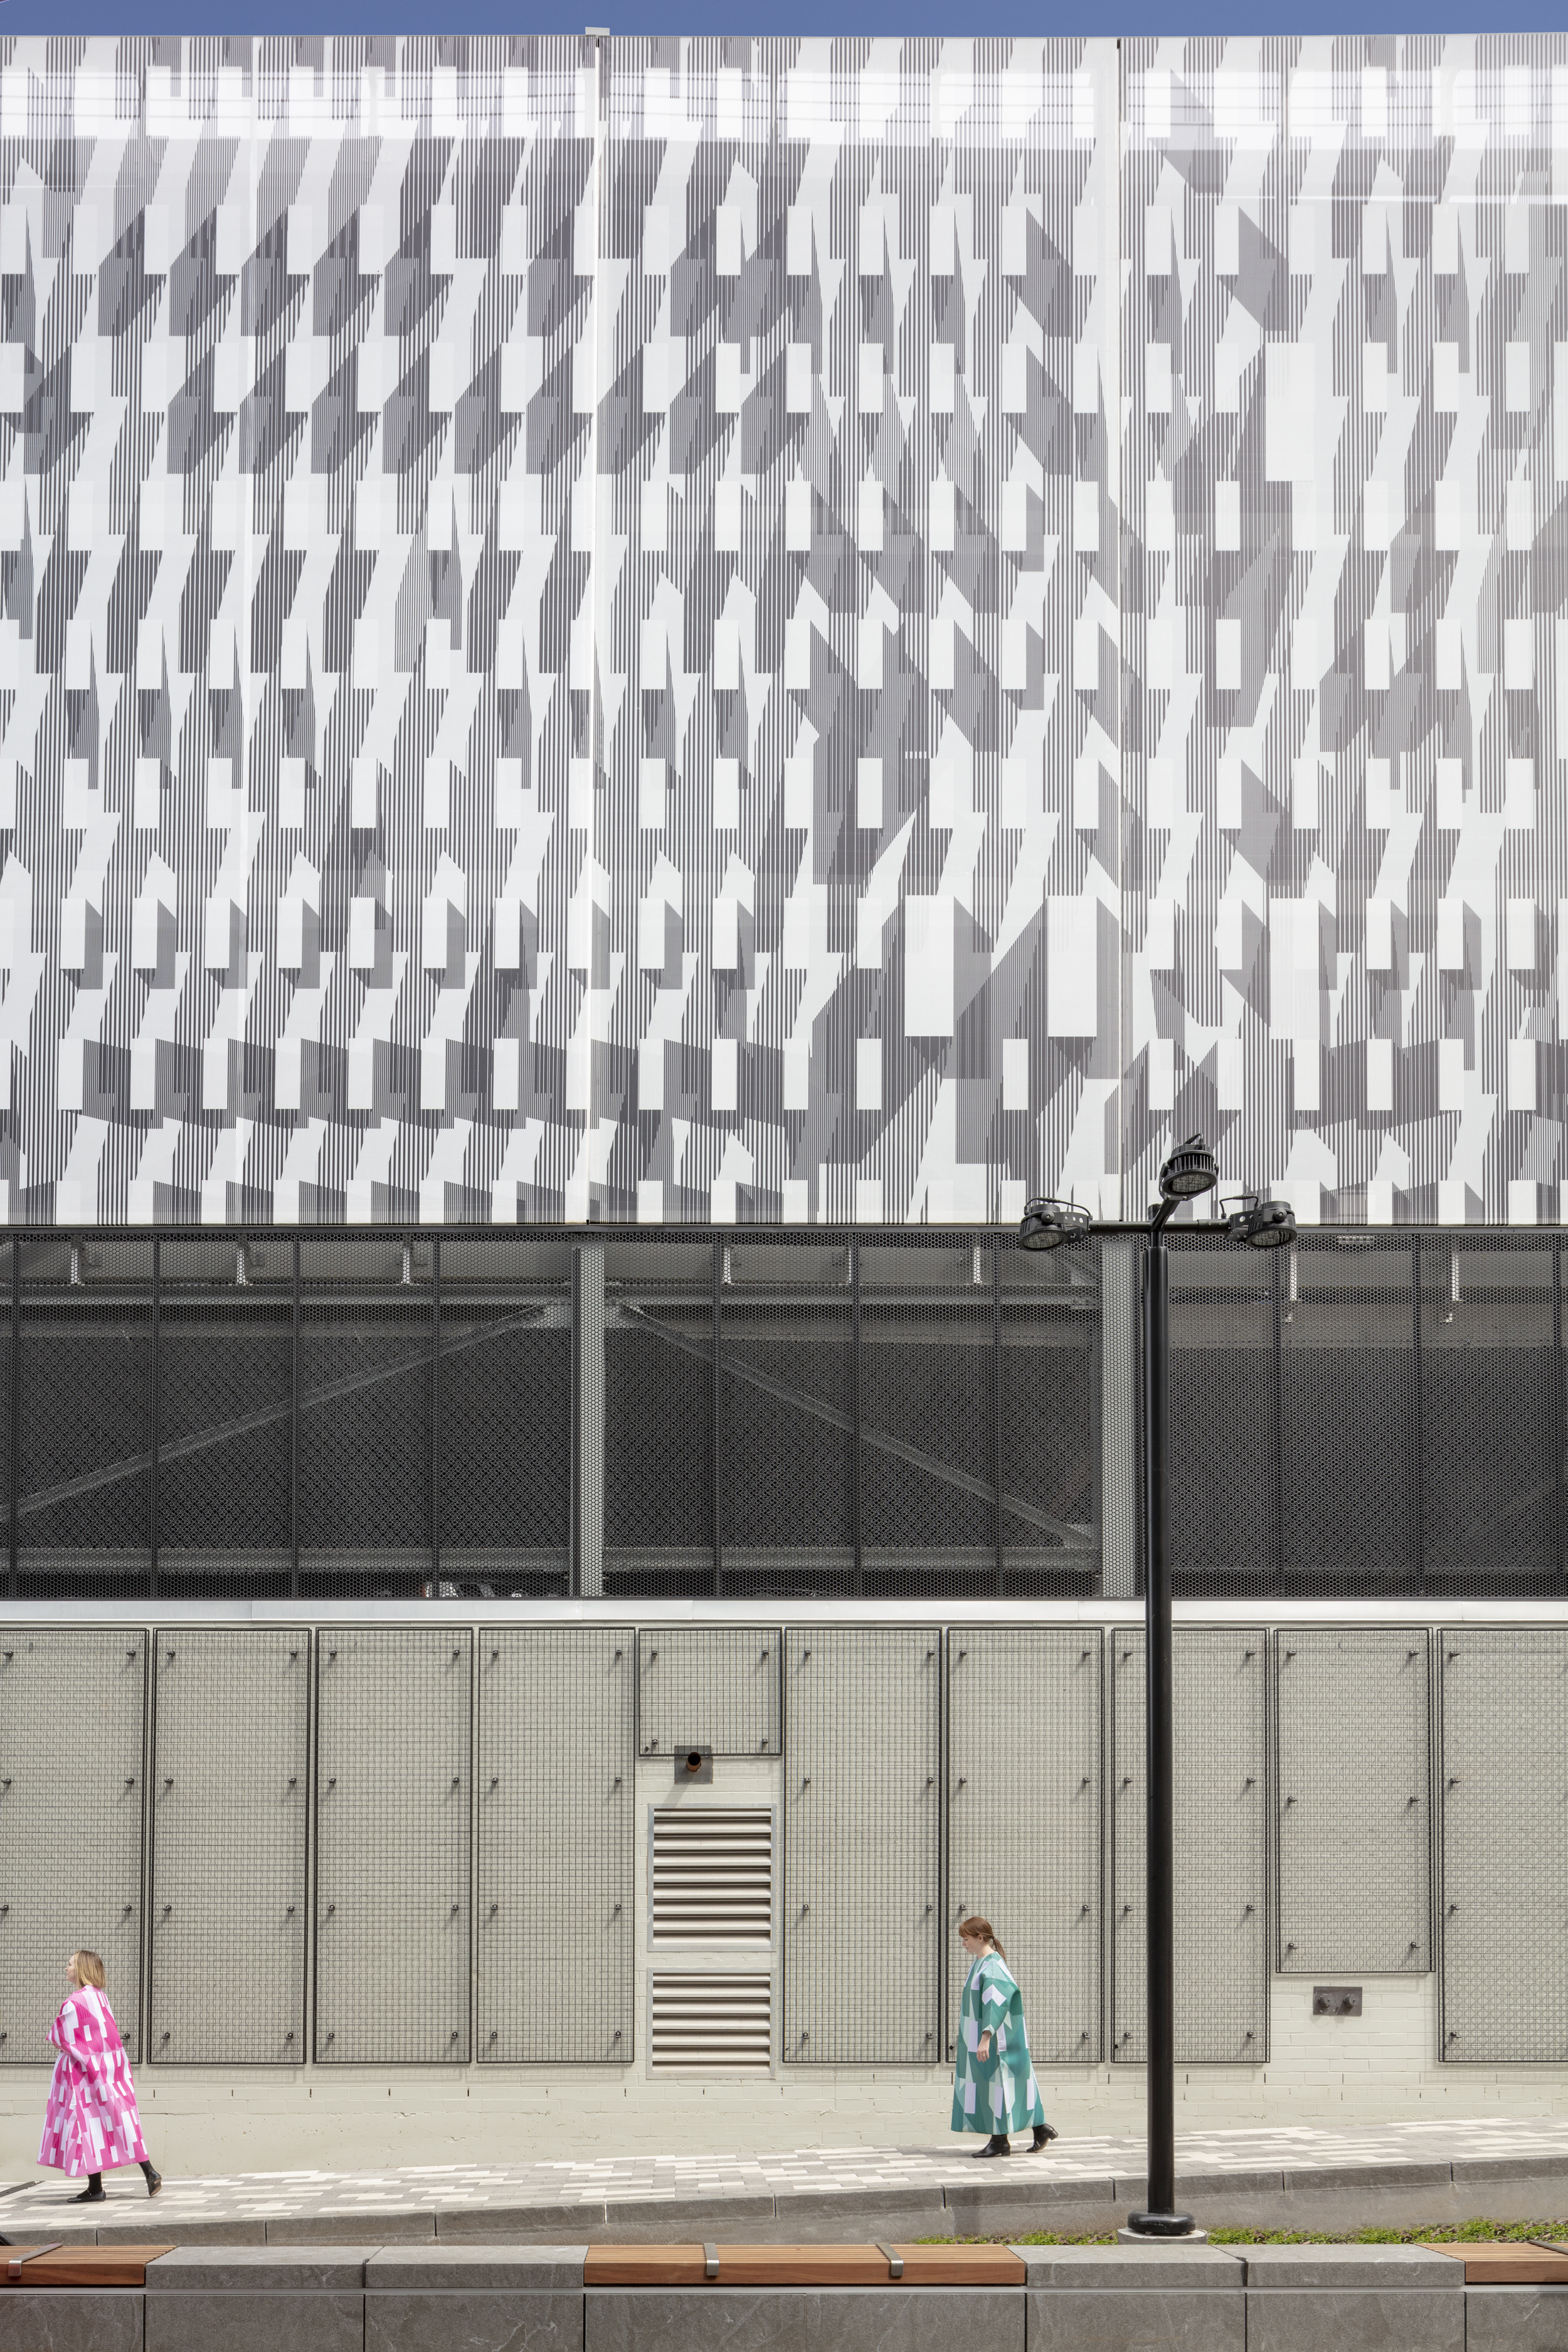 Kendall Garage by French 2D. Photography by John Horner.